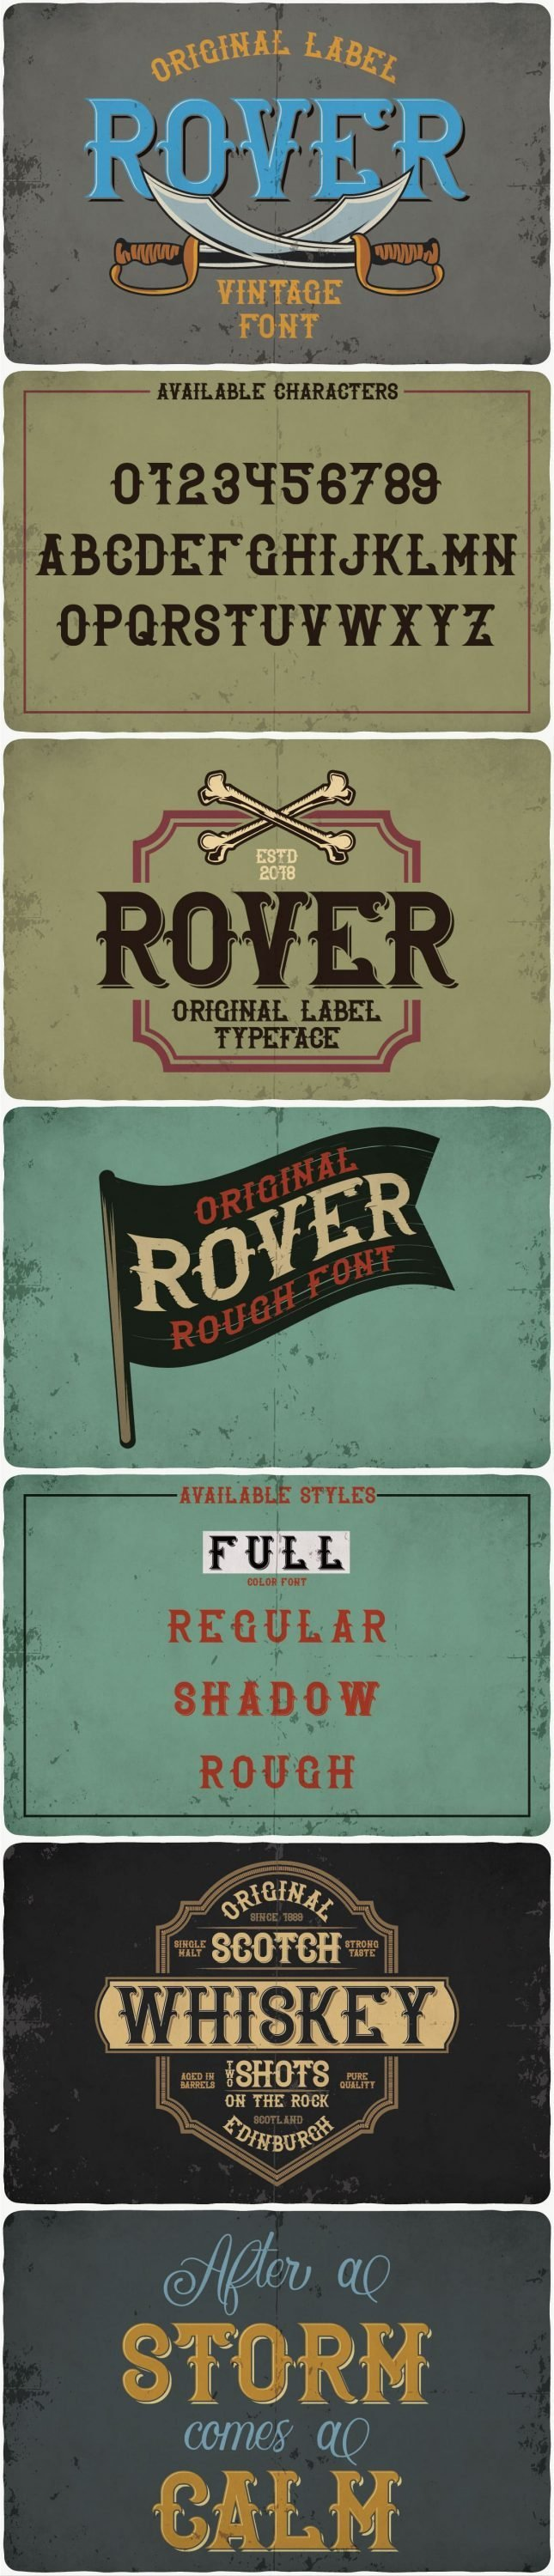 Rover typeface for pinterest.